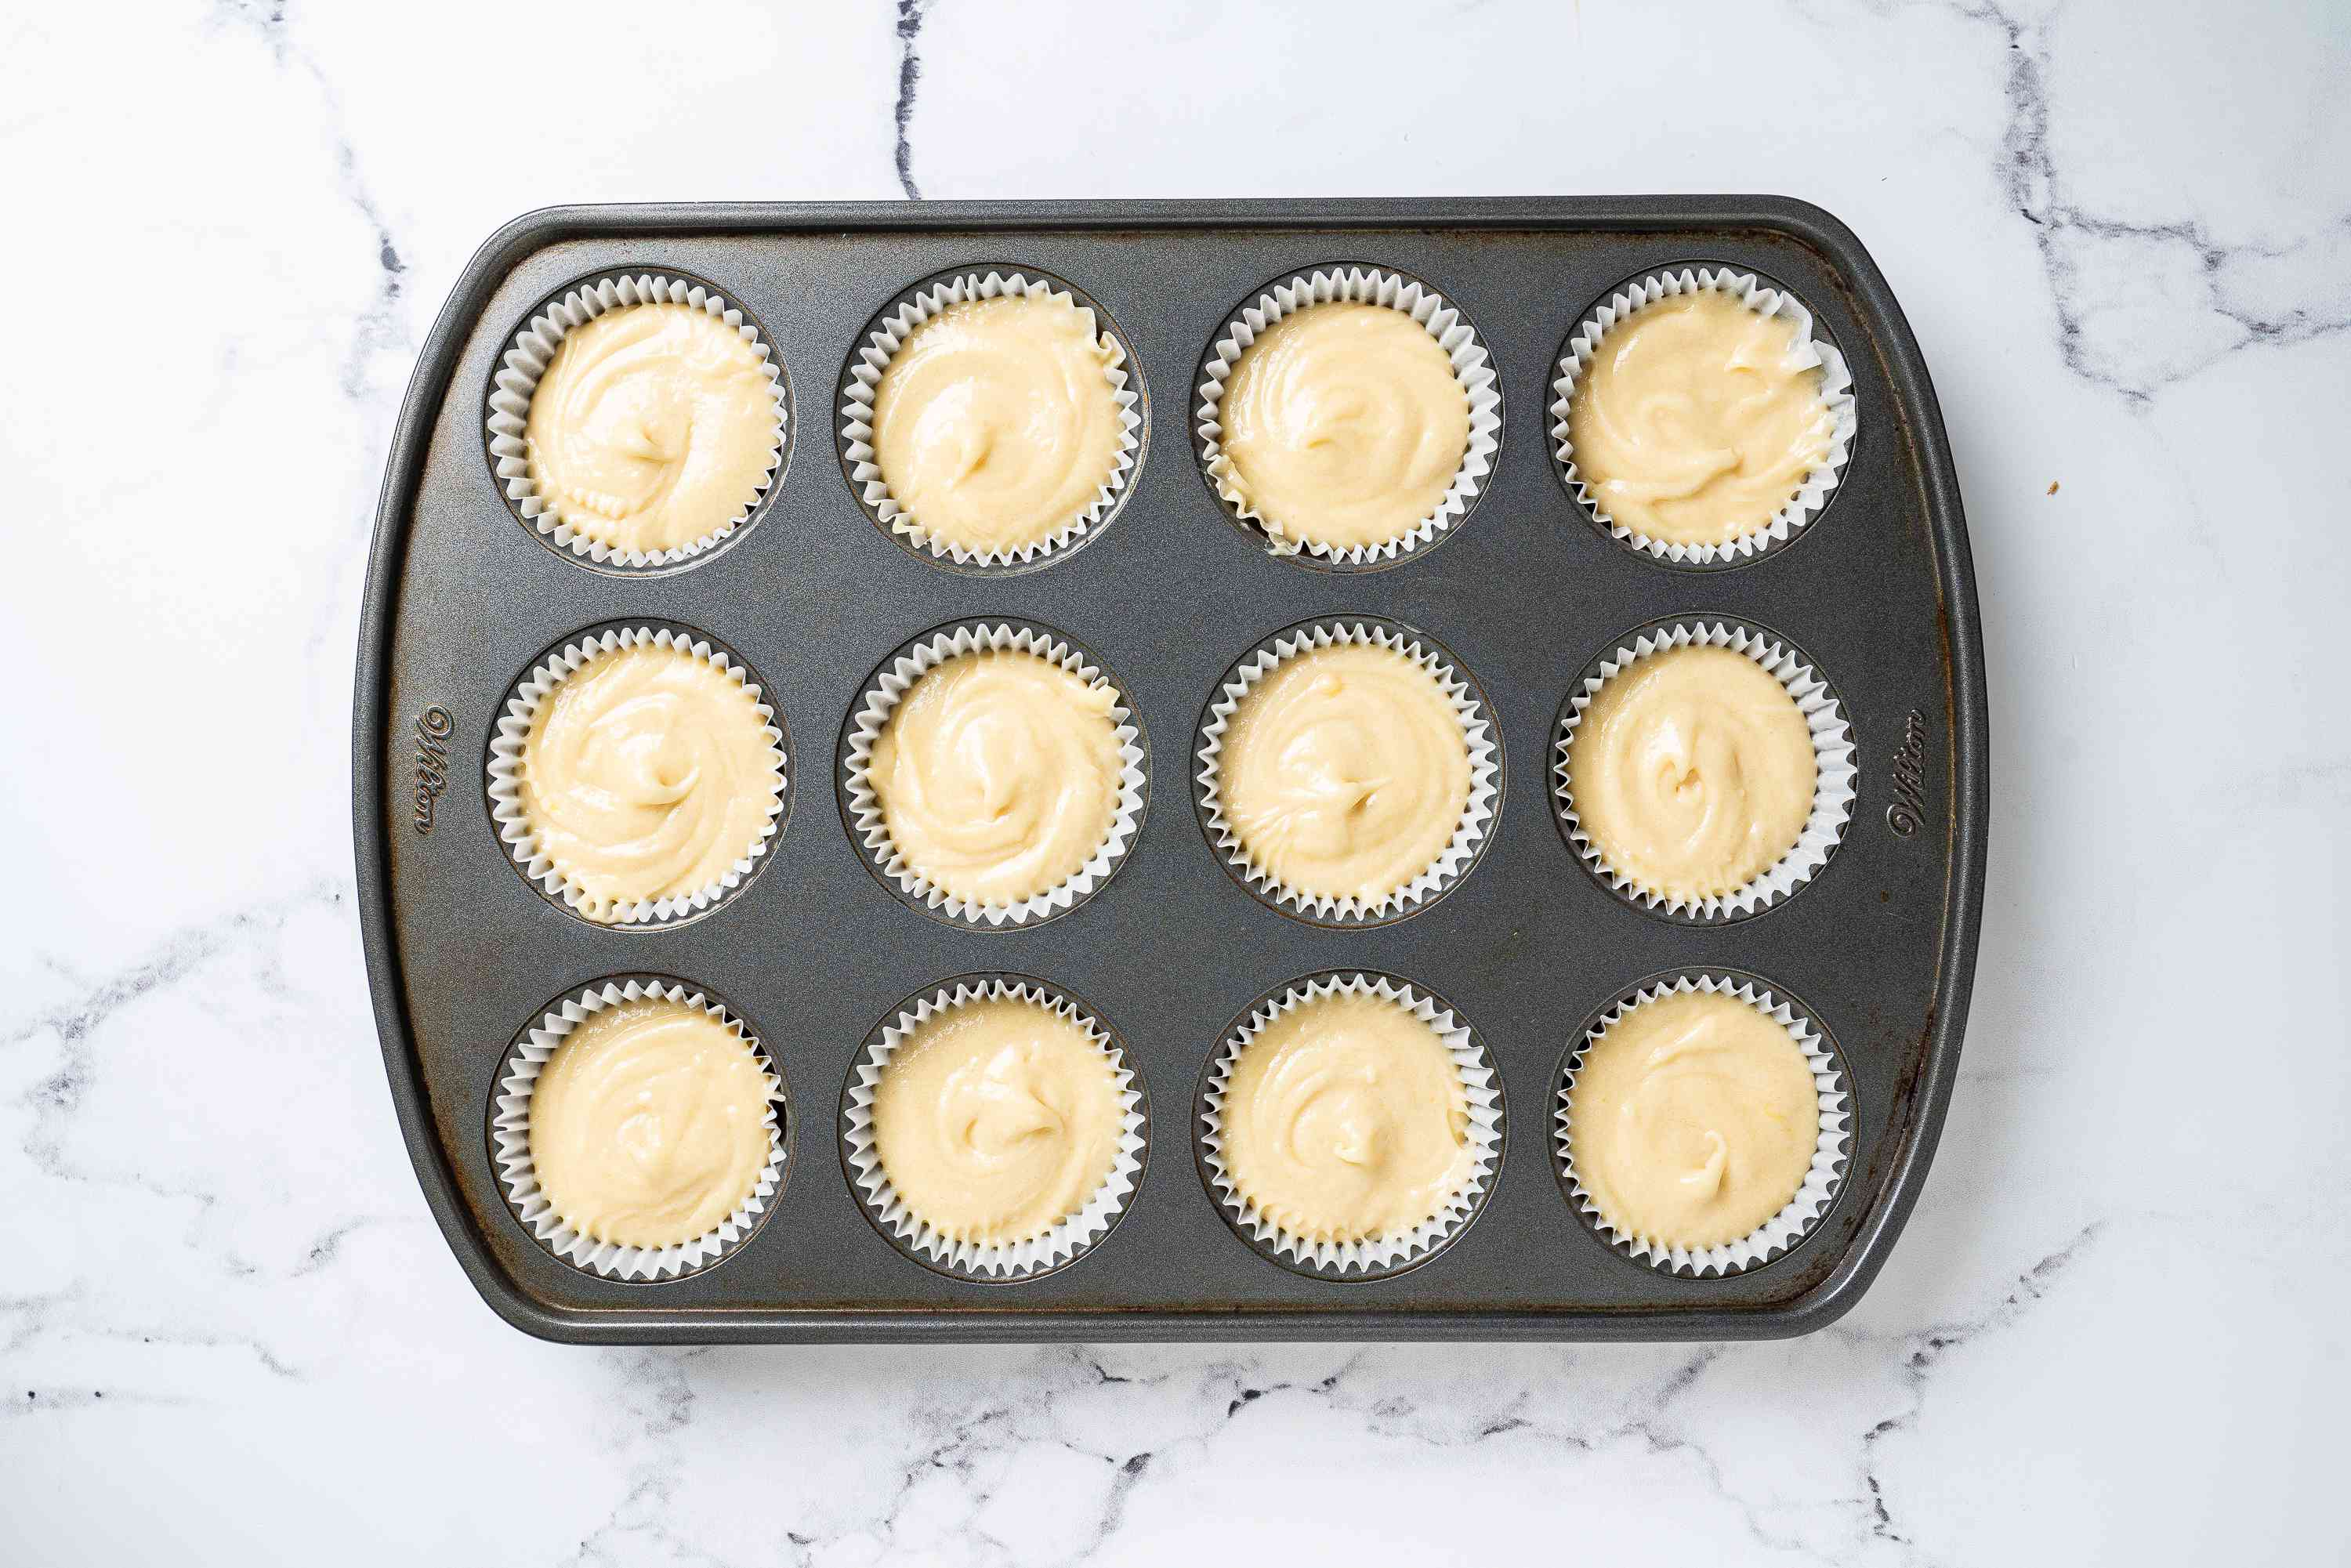 Unbaked cupcakes in a muffin tin